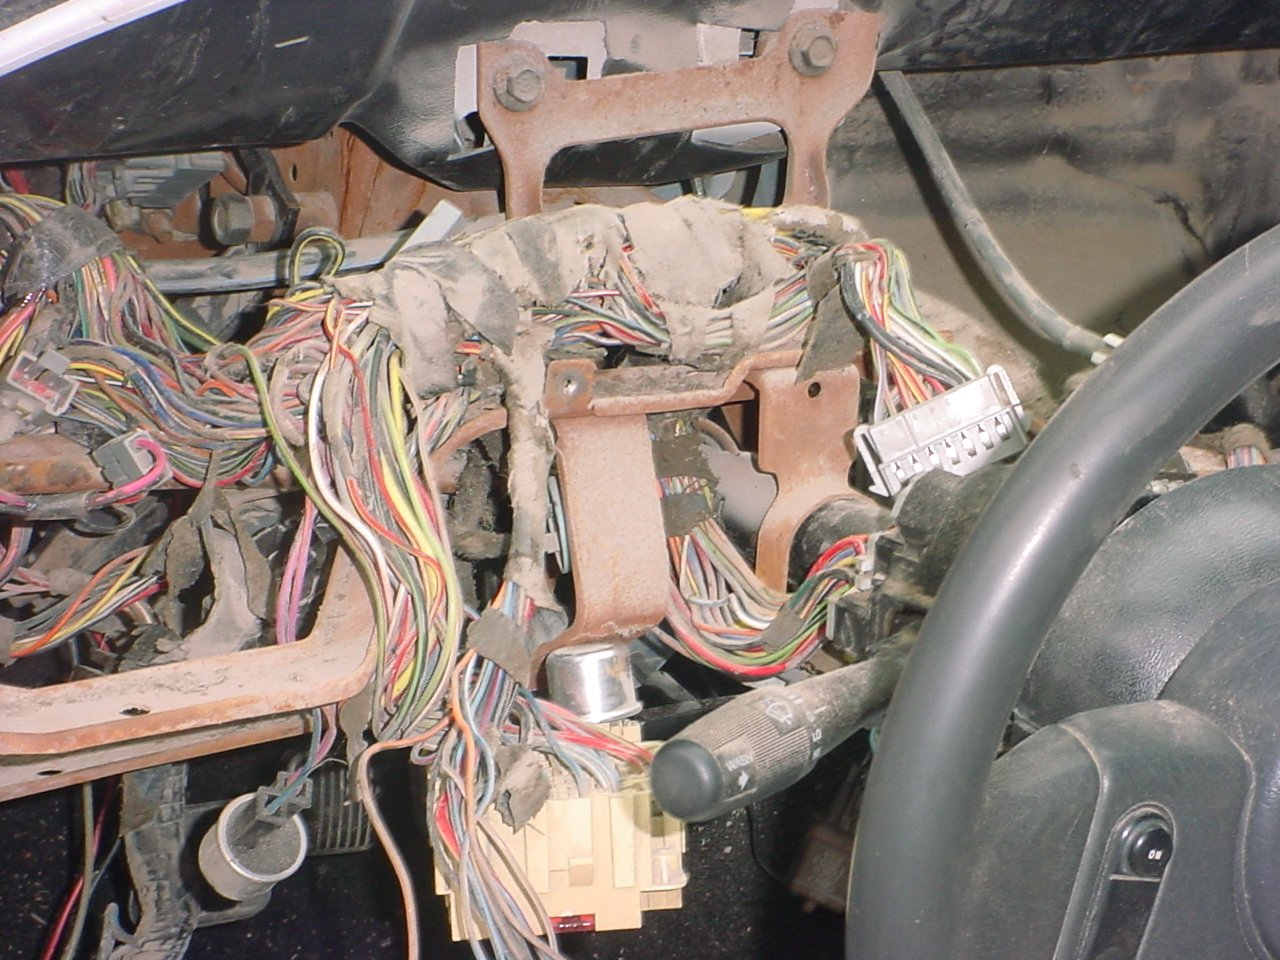 12808d1134269196 underdash wiring diagram dsc01663 underdash wiring diagram ford mustang forum 1991 mustang wiring harness at bayanpartner.co